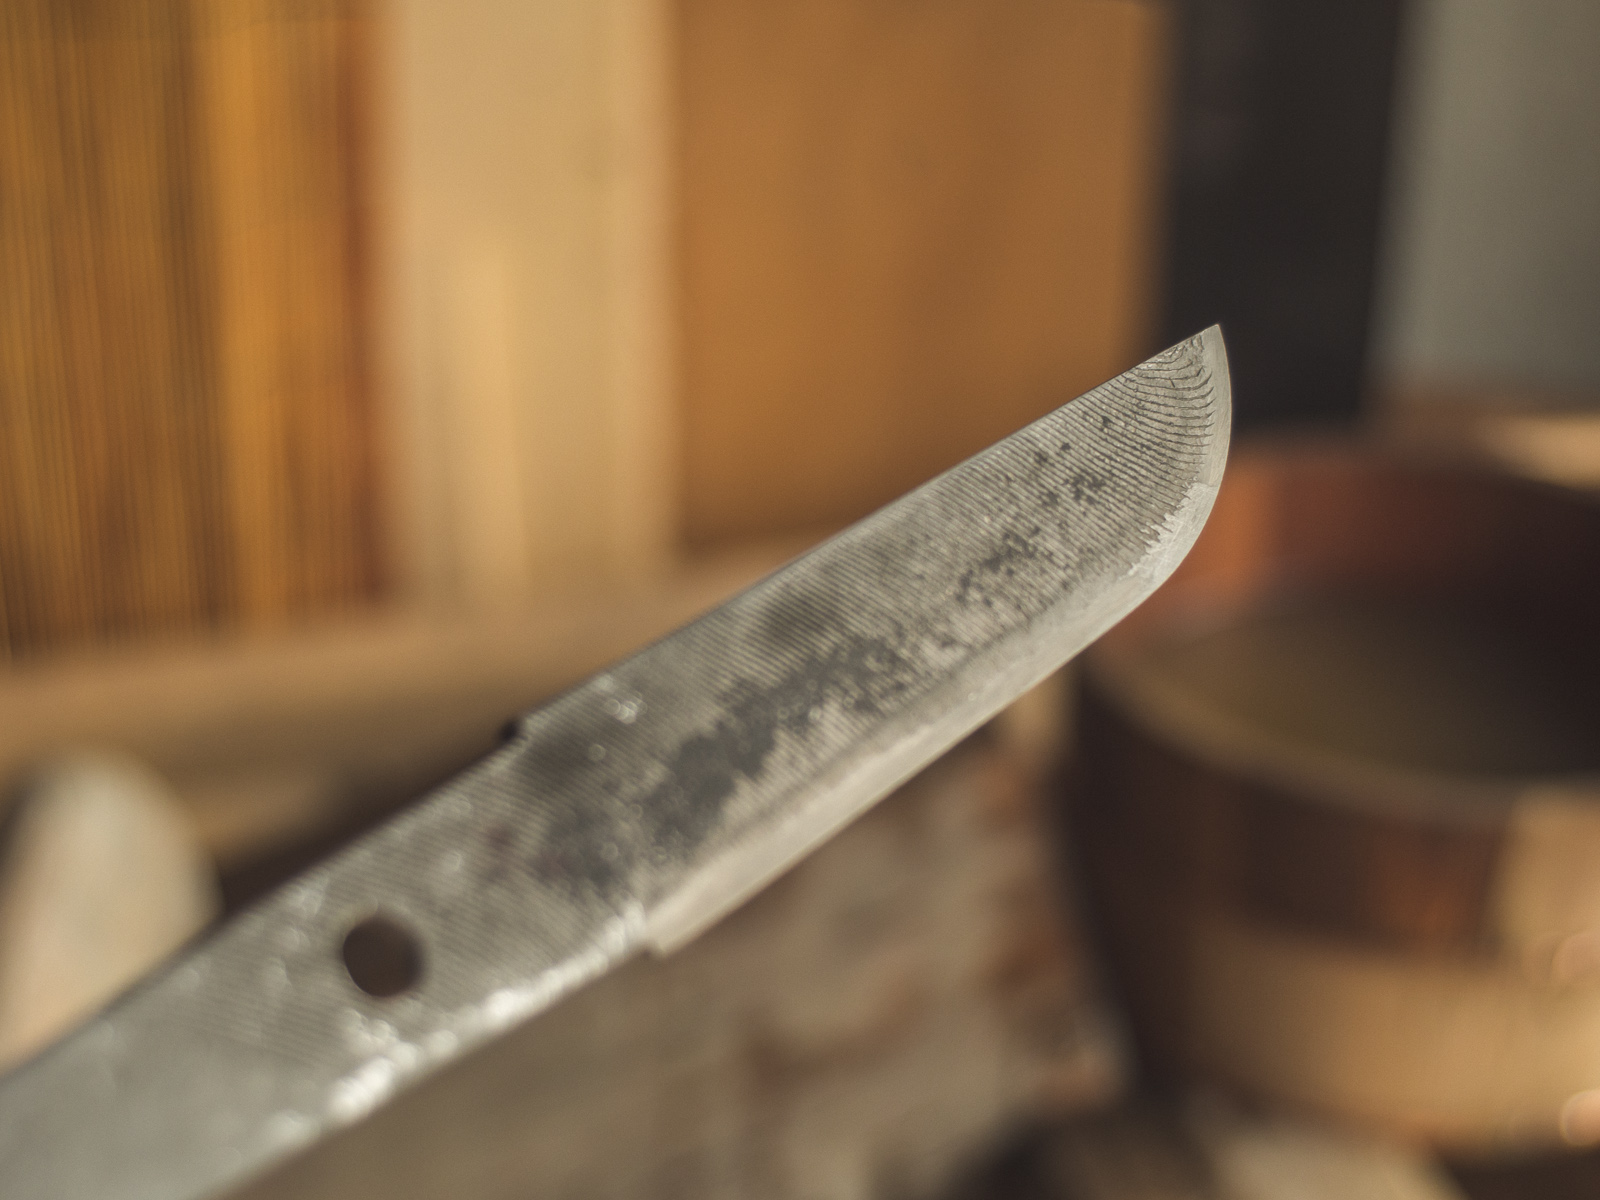 Island Blacksmith: Charcoal forged knives from reclaimed files.